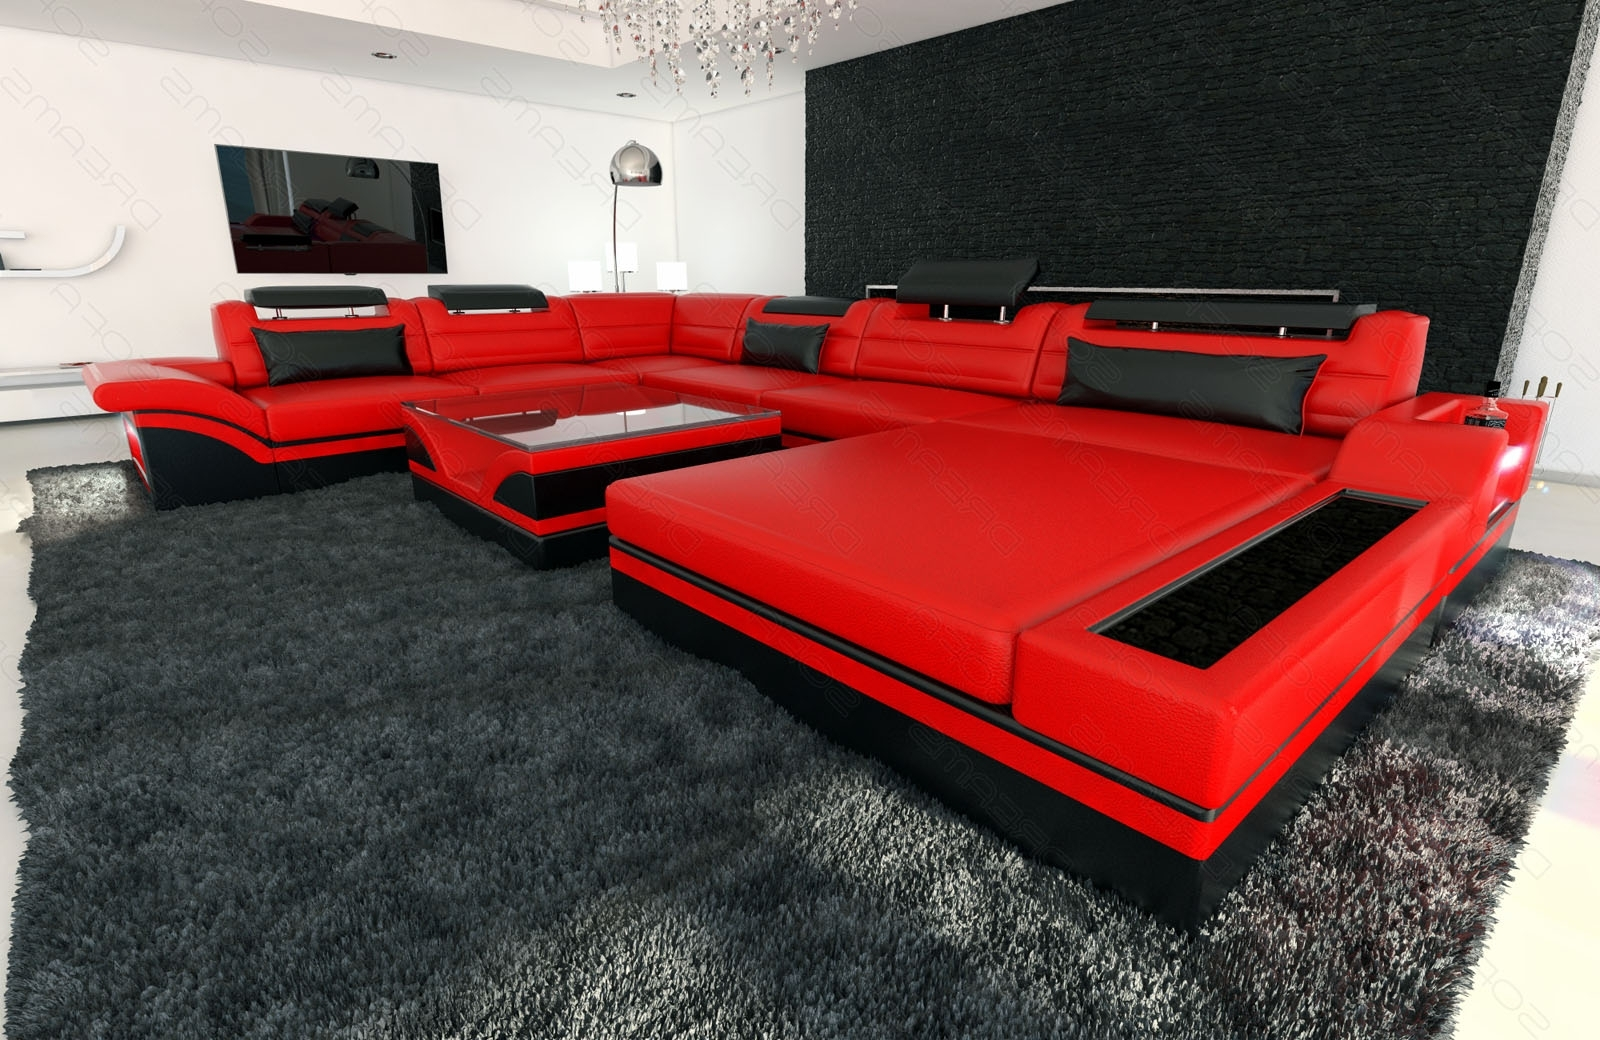 Ebay In Red And Black Sofas (View 14 of 20)